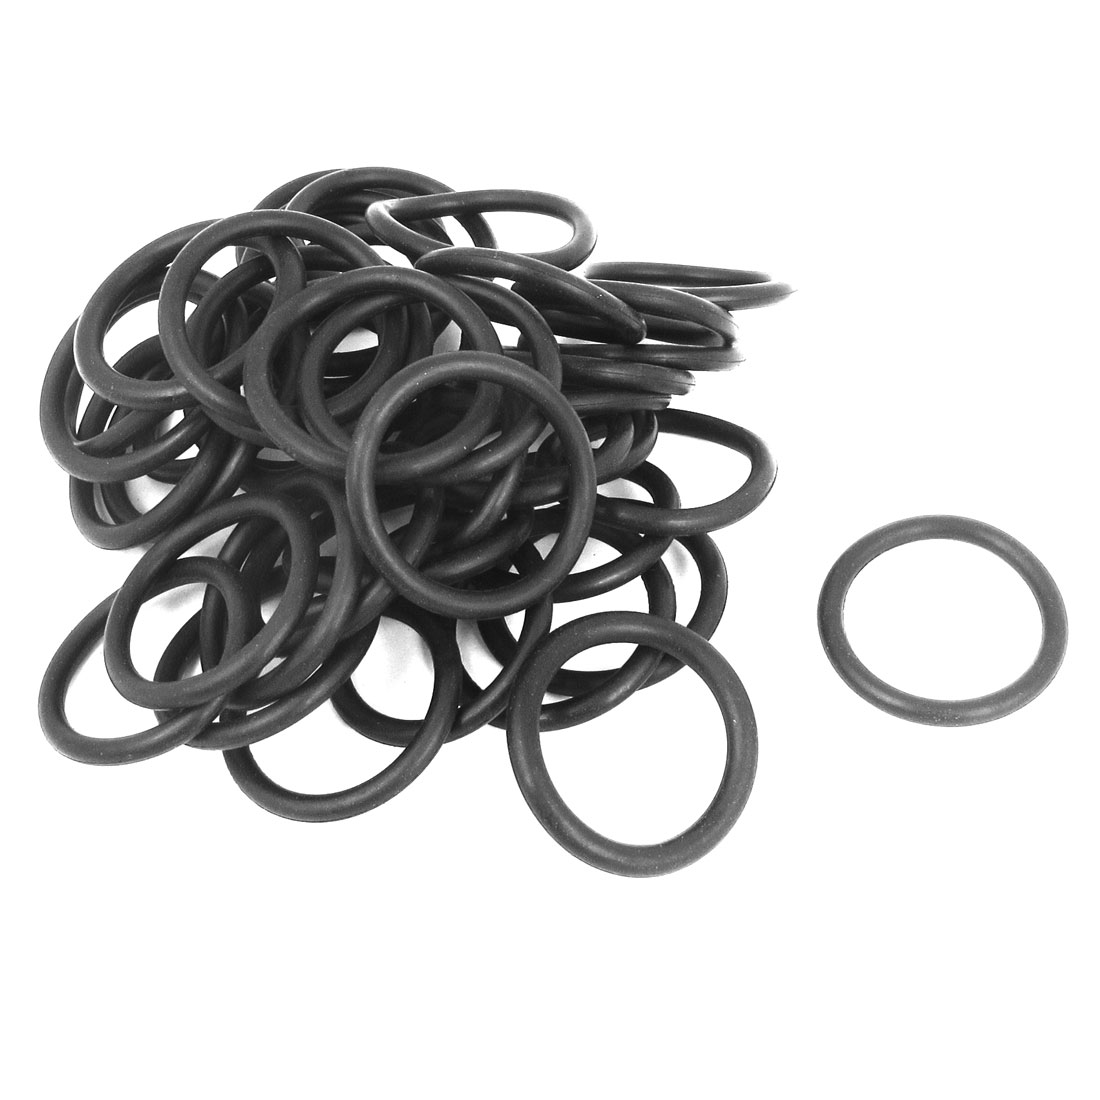 55pcs Rubber Gasket O Ring Seal Washers 38mmx4mm Black for PP-R Tube Connector`